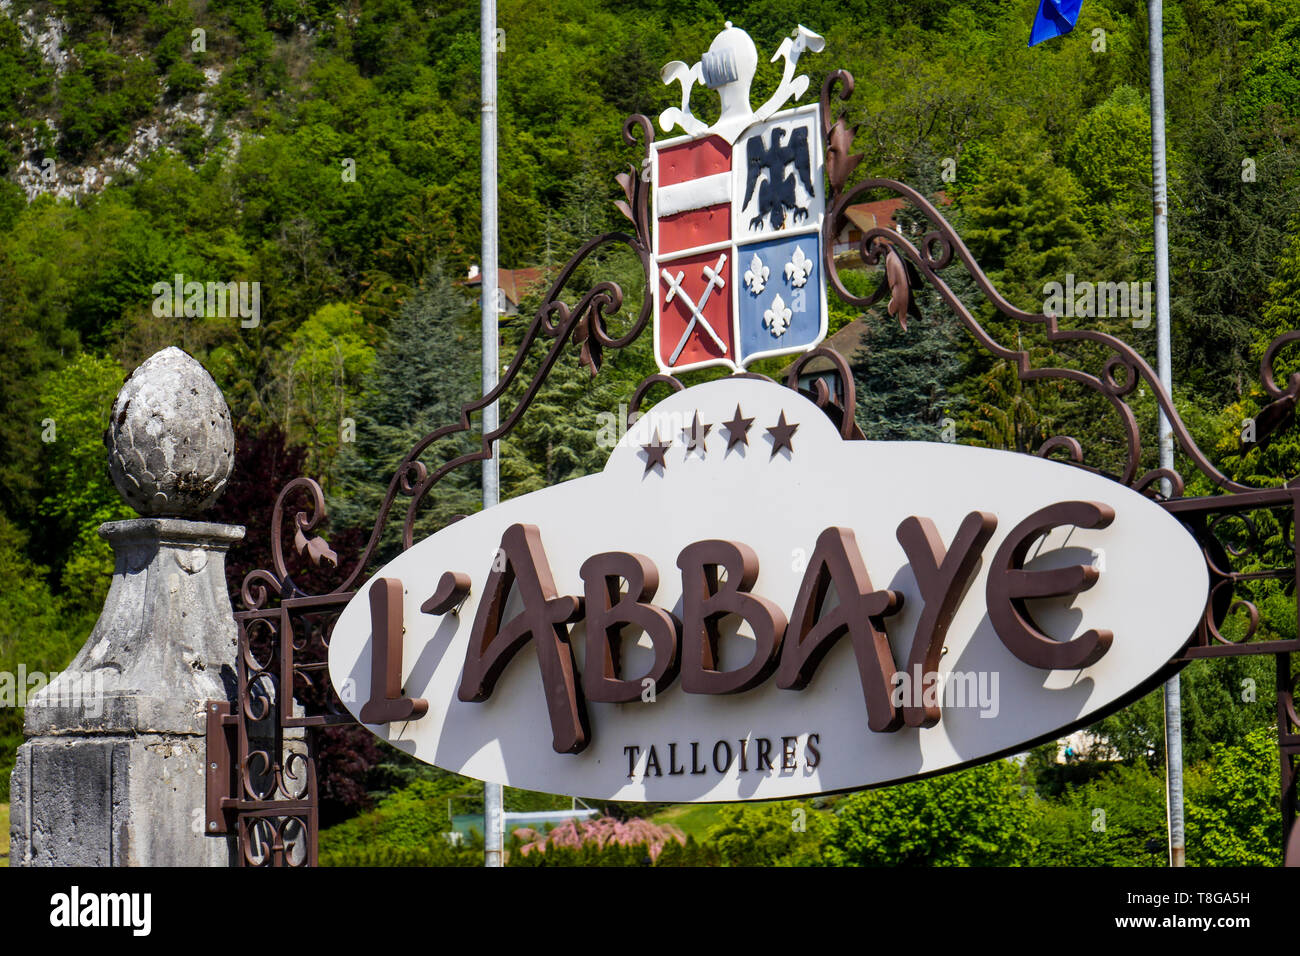 L'Abbaye, renowned Hotel and restaurant, Talloire, Annecy Lake, Haute-Savoie, France Stock Photo